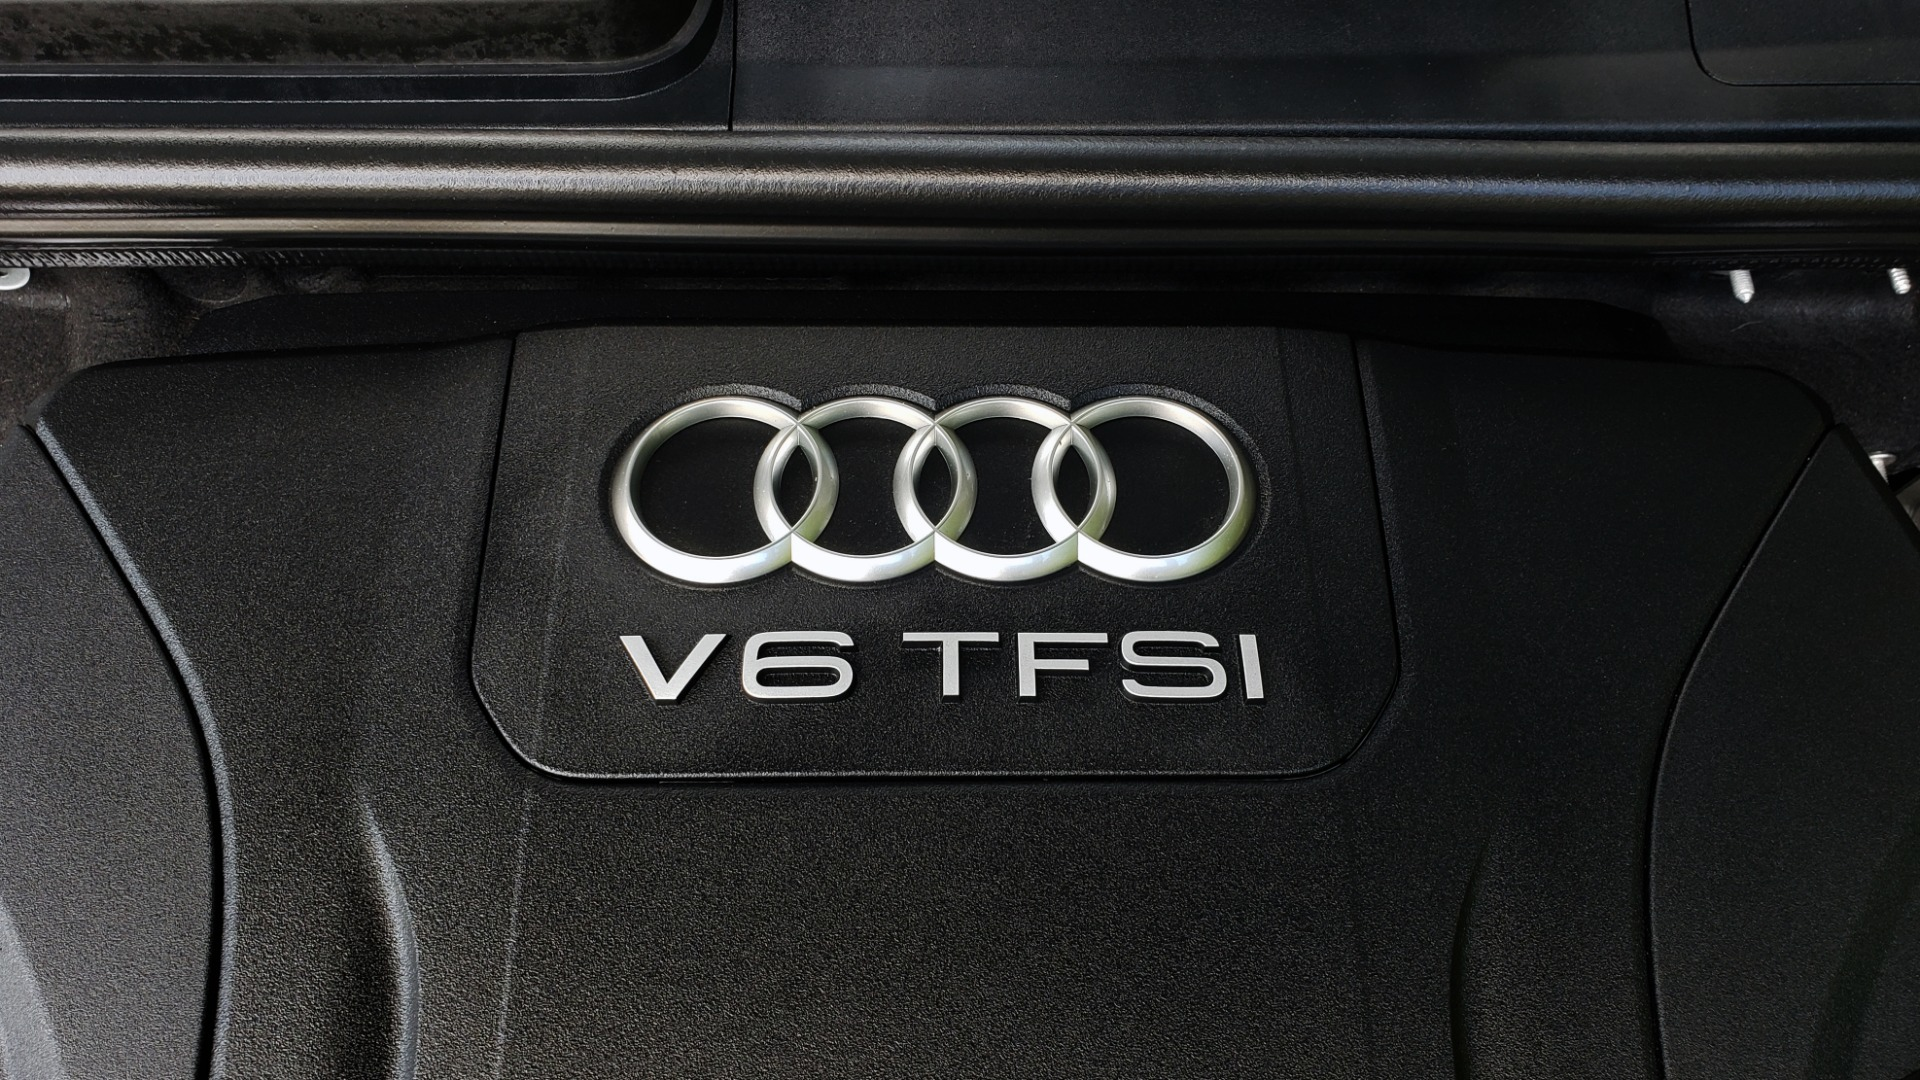 Used 2017 Audi Q7 PREMIUM PLUS / VISION PKG / NAV / PANO-ROOF / 3-ROW / REARVIEW for sale Sold at Formula Imports in Charlotte NC 28227 12